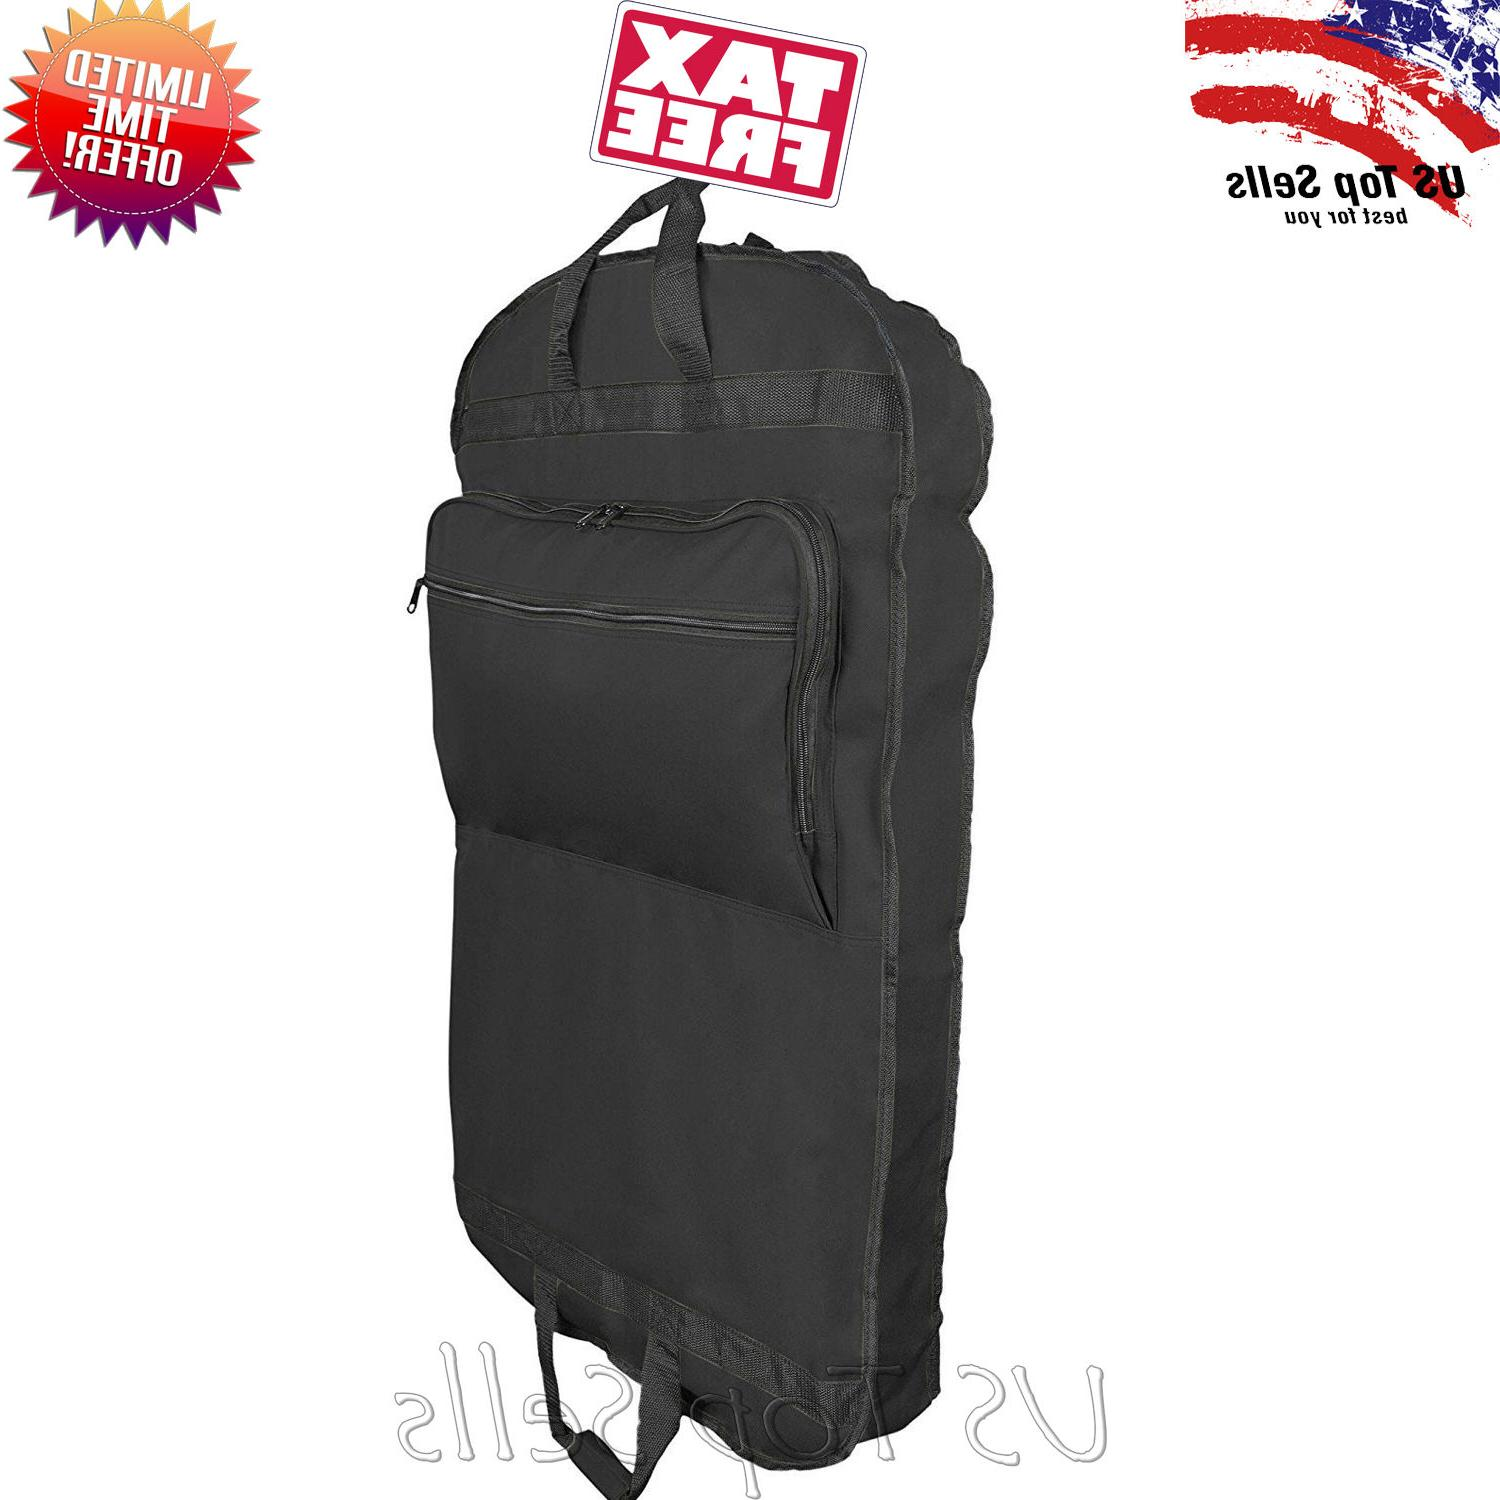 Clothes Travel Bag Cover Business Luggage